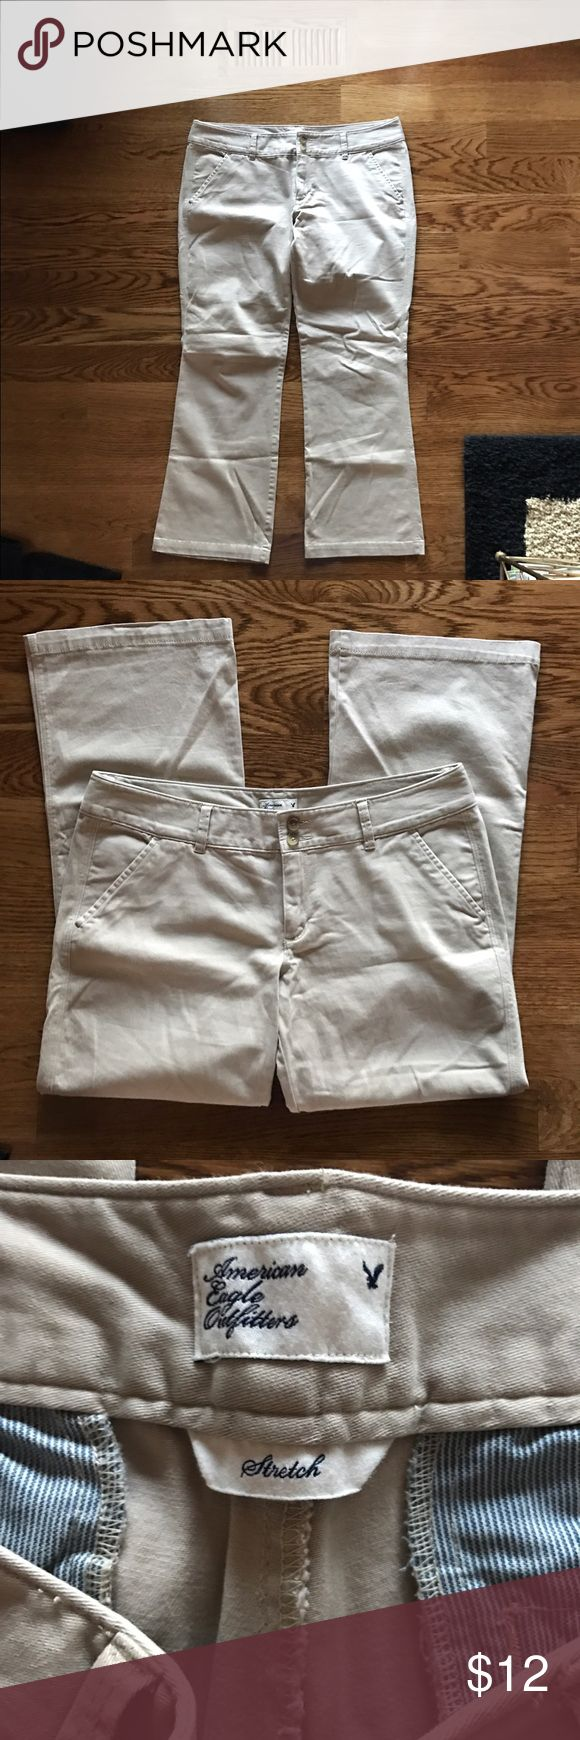 American Eagle Outfitters Stretch khakis Soft and supple khaki pants, sure to be one of you favorite pairs! Zero wear and tear on pant cuffs or on the inner thighs. Like wearing yoga pants to work! Size 12 SHORT, stretch style. American Eagle Outfitters Pants Trousers